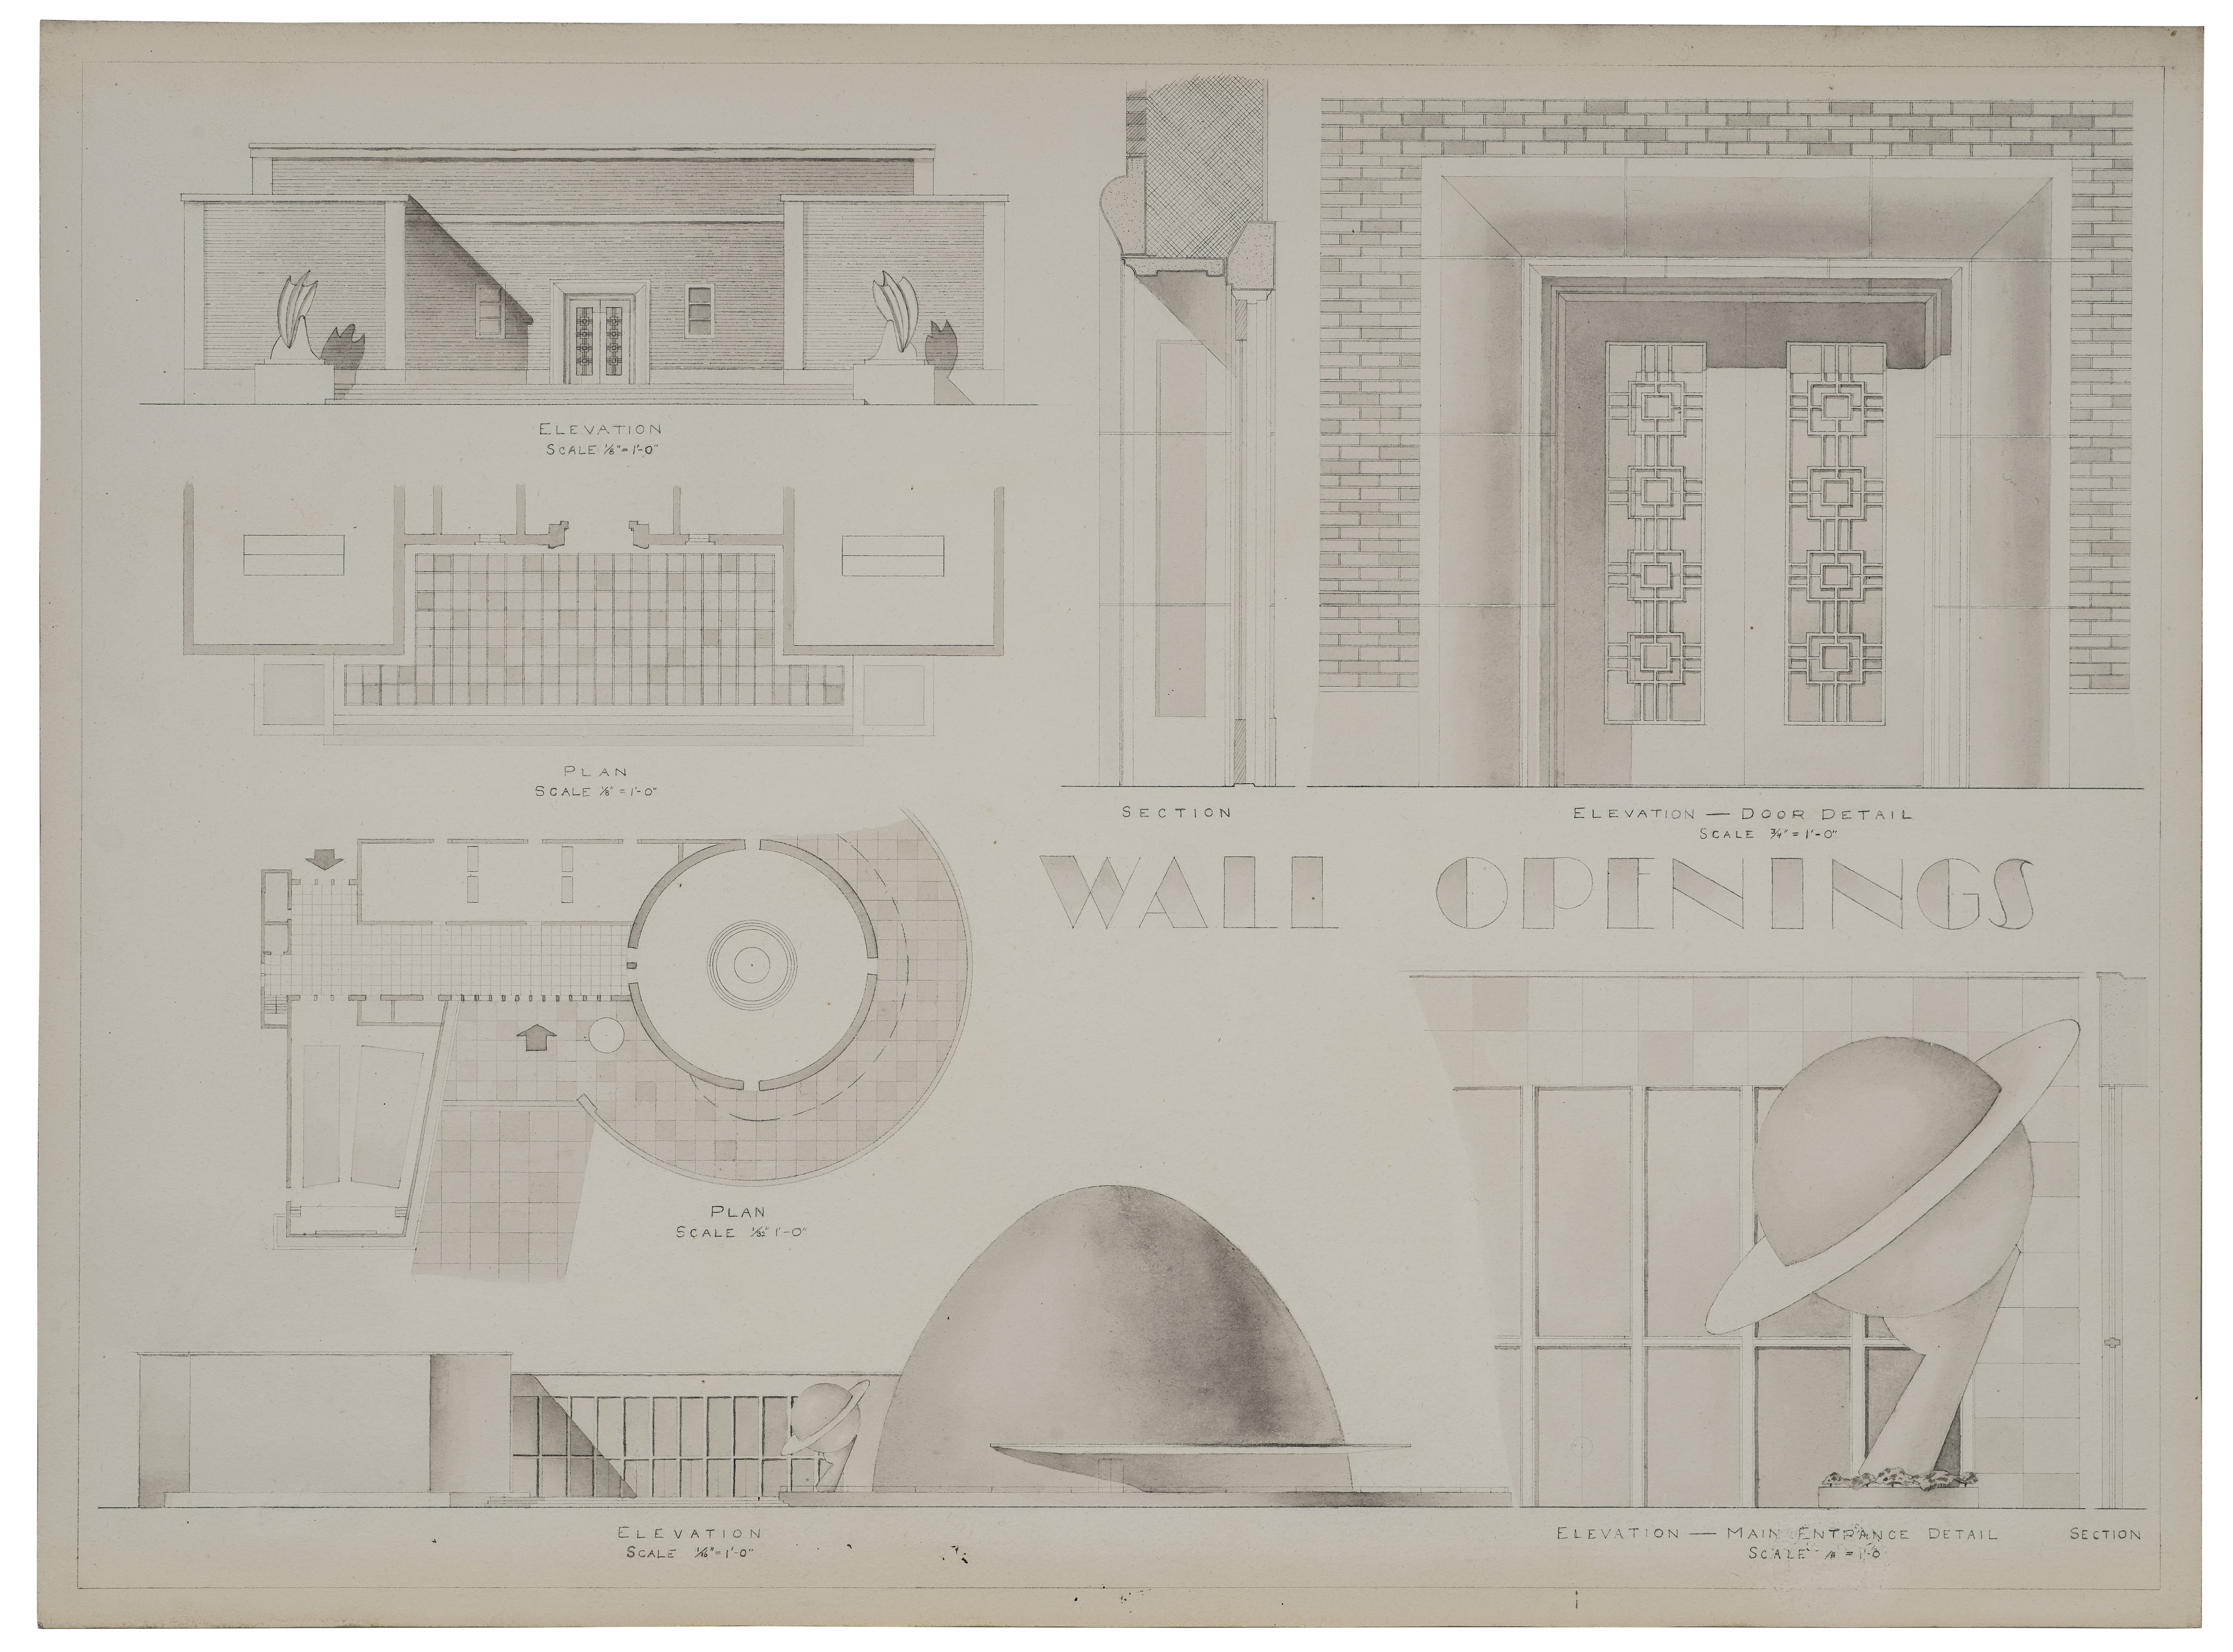 A Vintage 1960s Architectural Drawing Study 